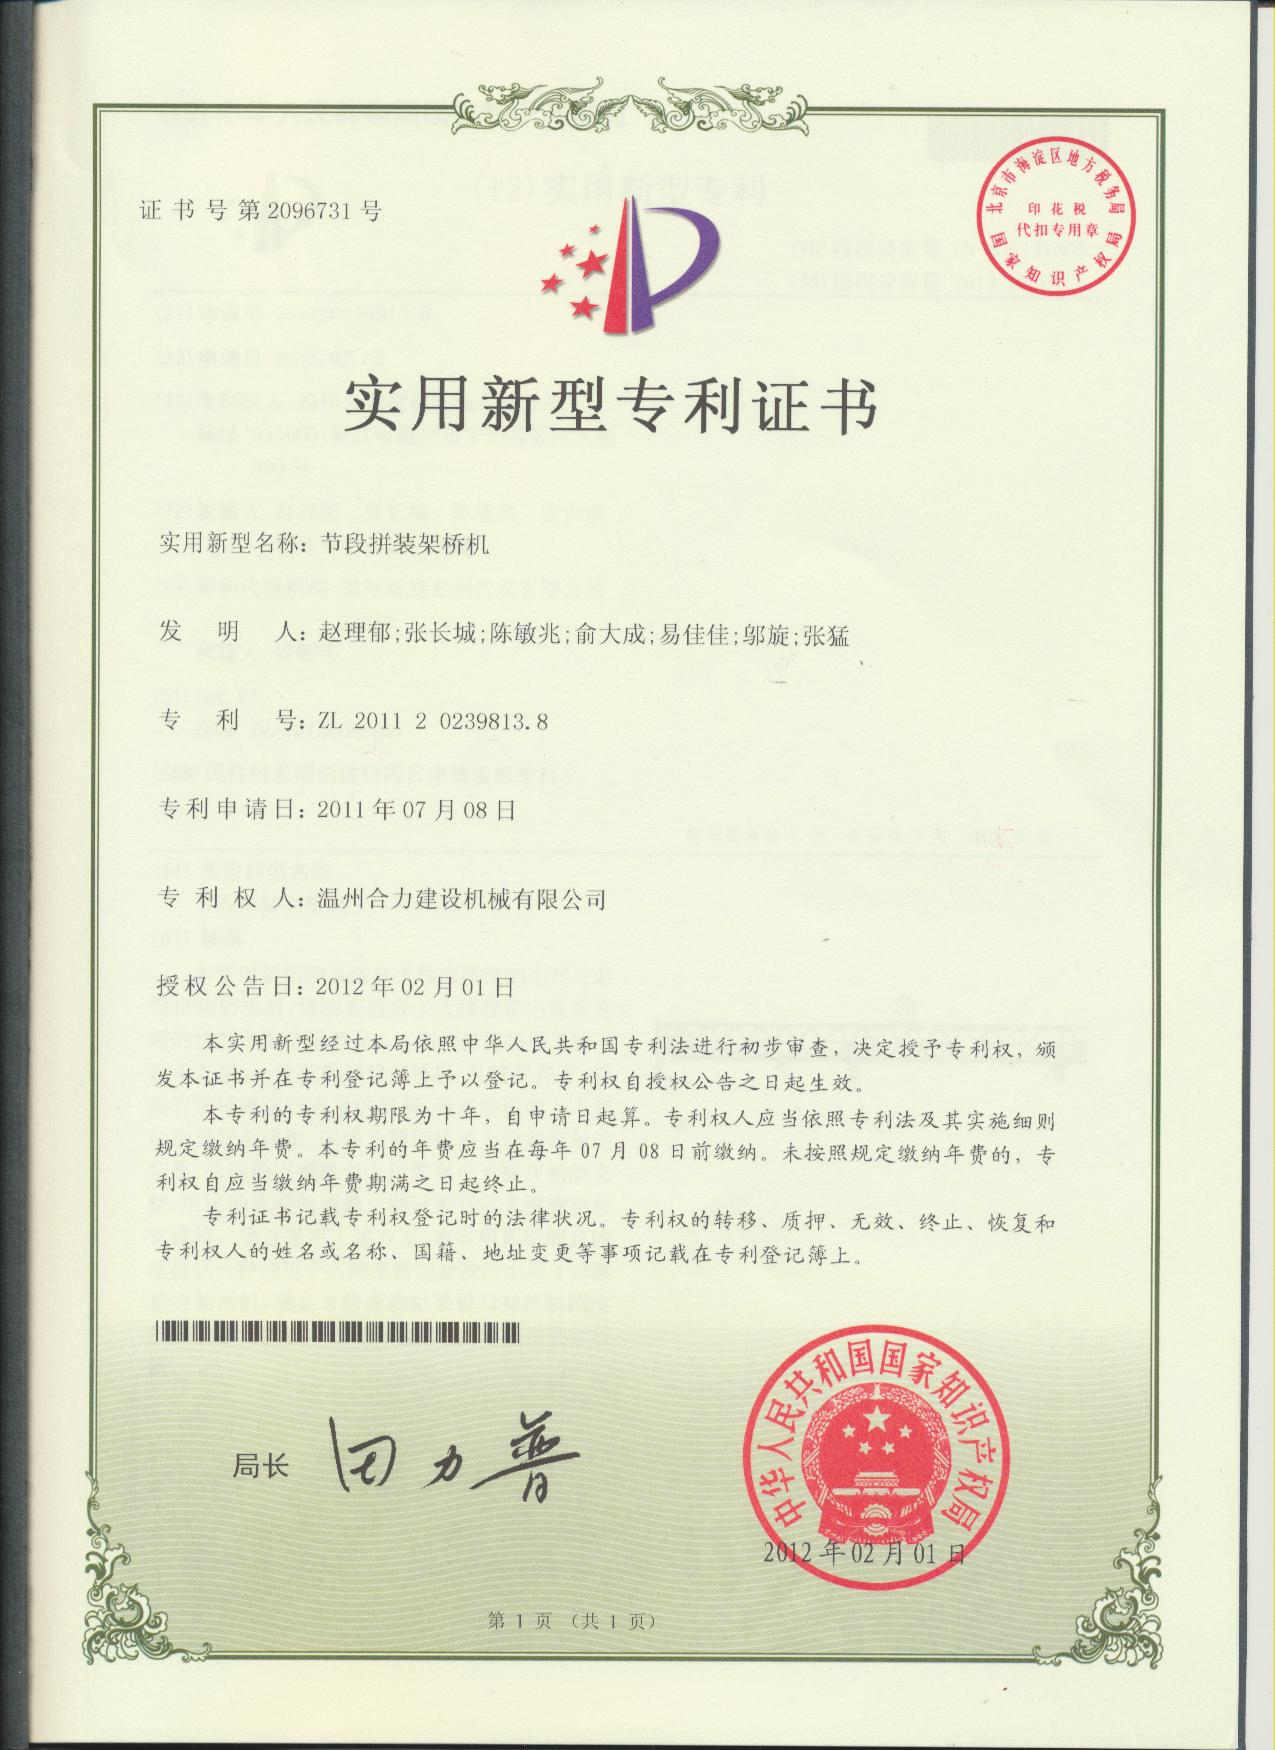 The Utility Model Patent Certificate of launching gantry for sengment assembling